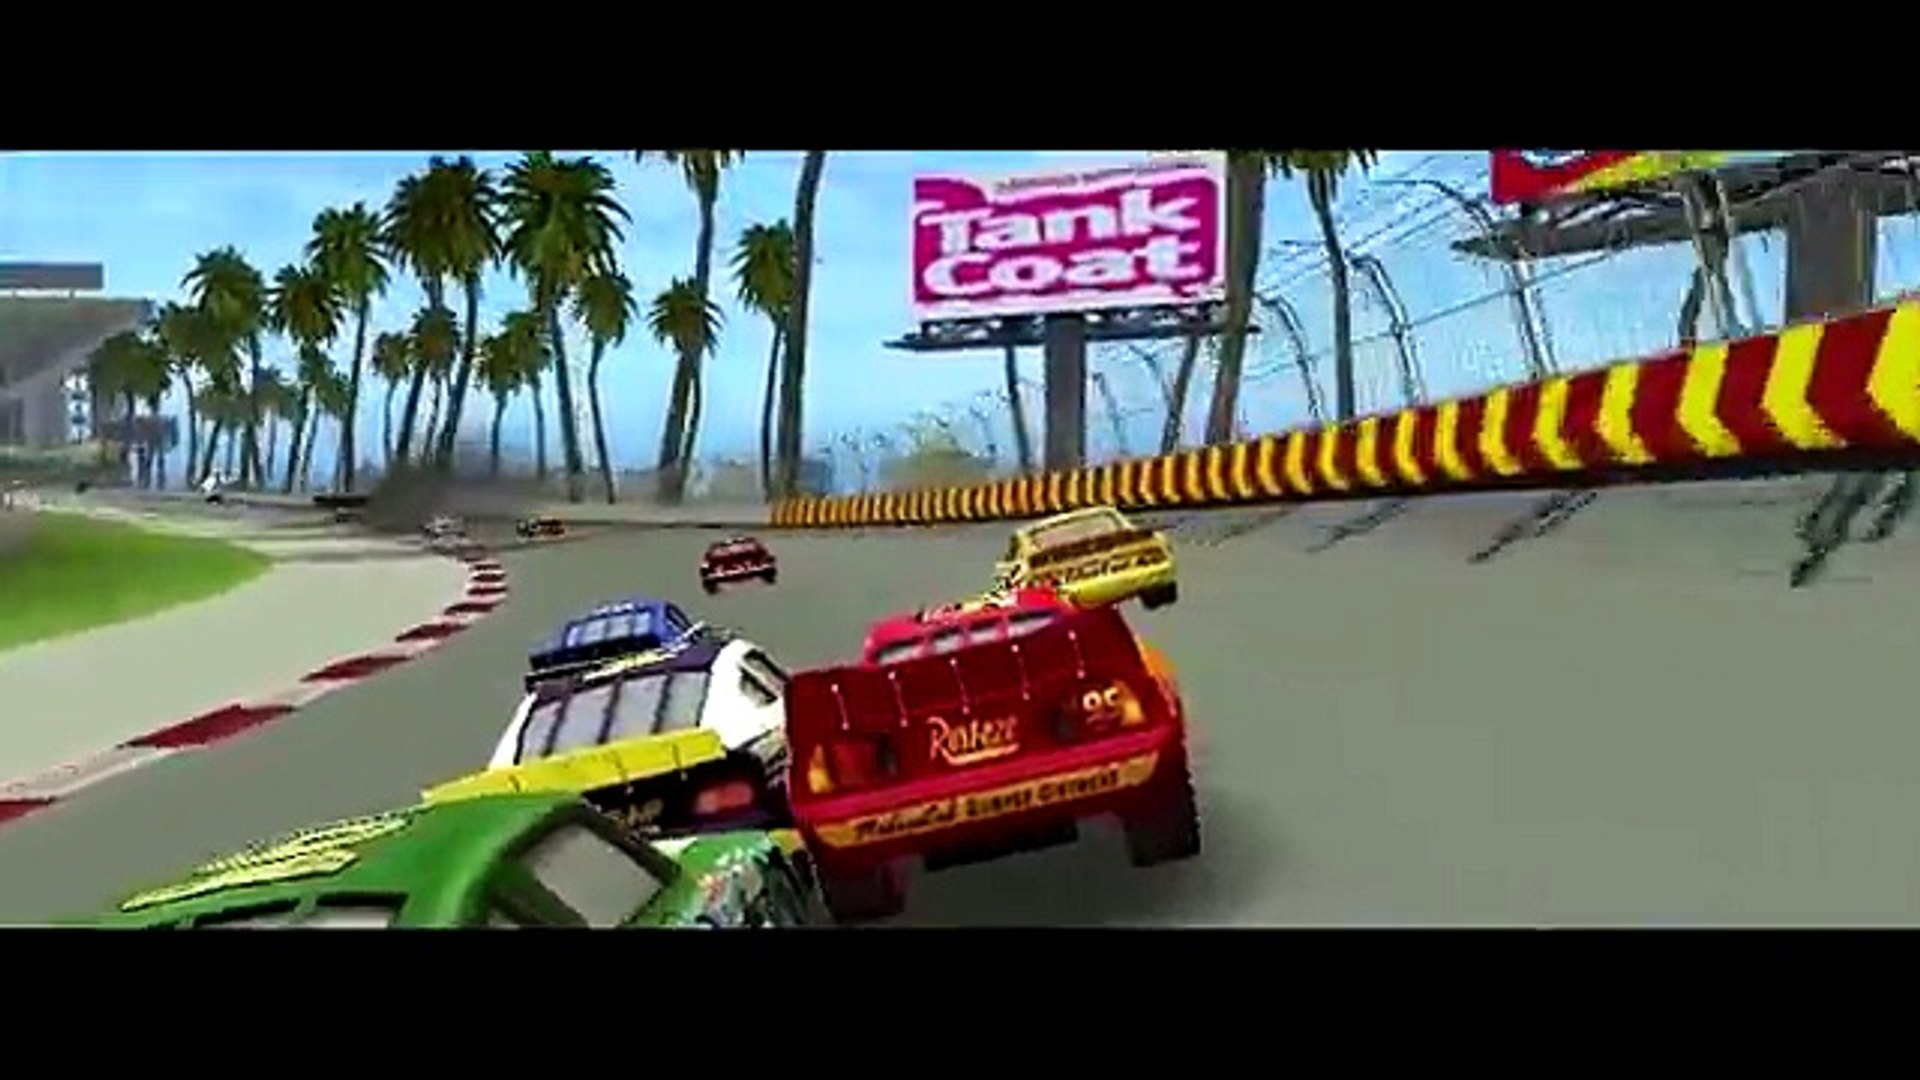 Chick Hicks & Lightning McQueen Cars Awesome Race Gameplay Disney Pixar Cars HD 1080P